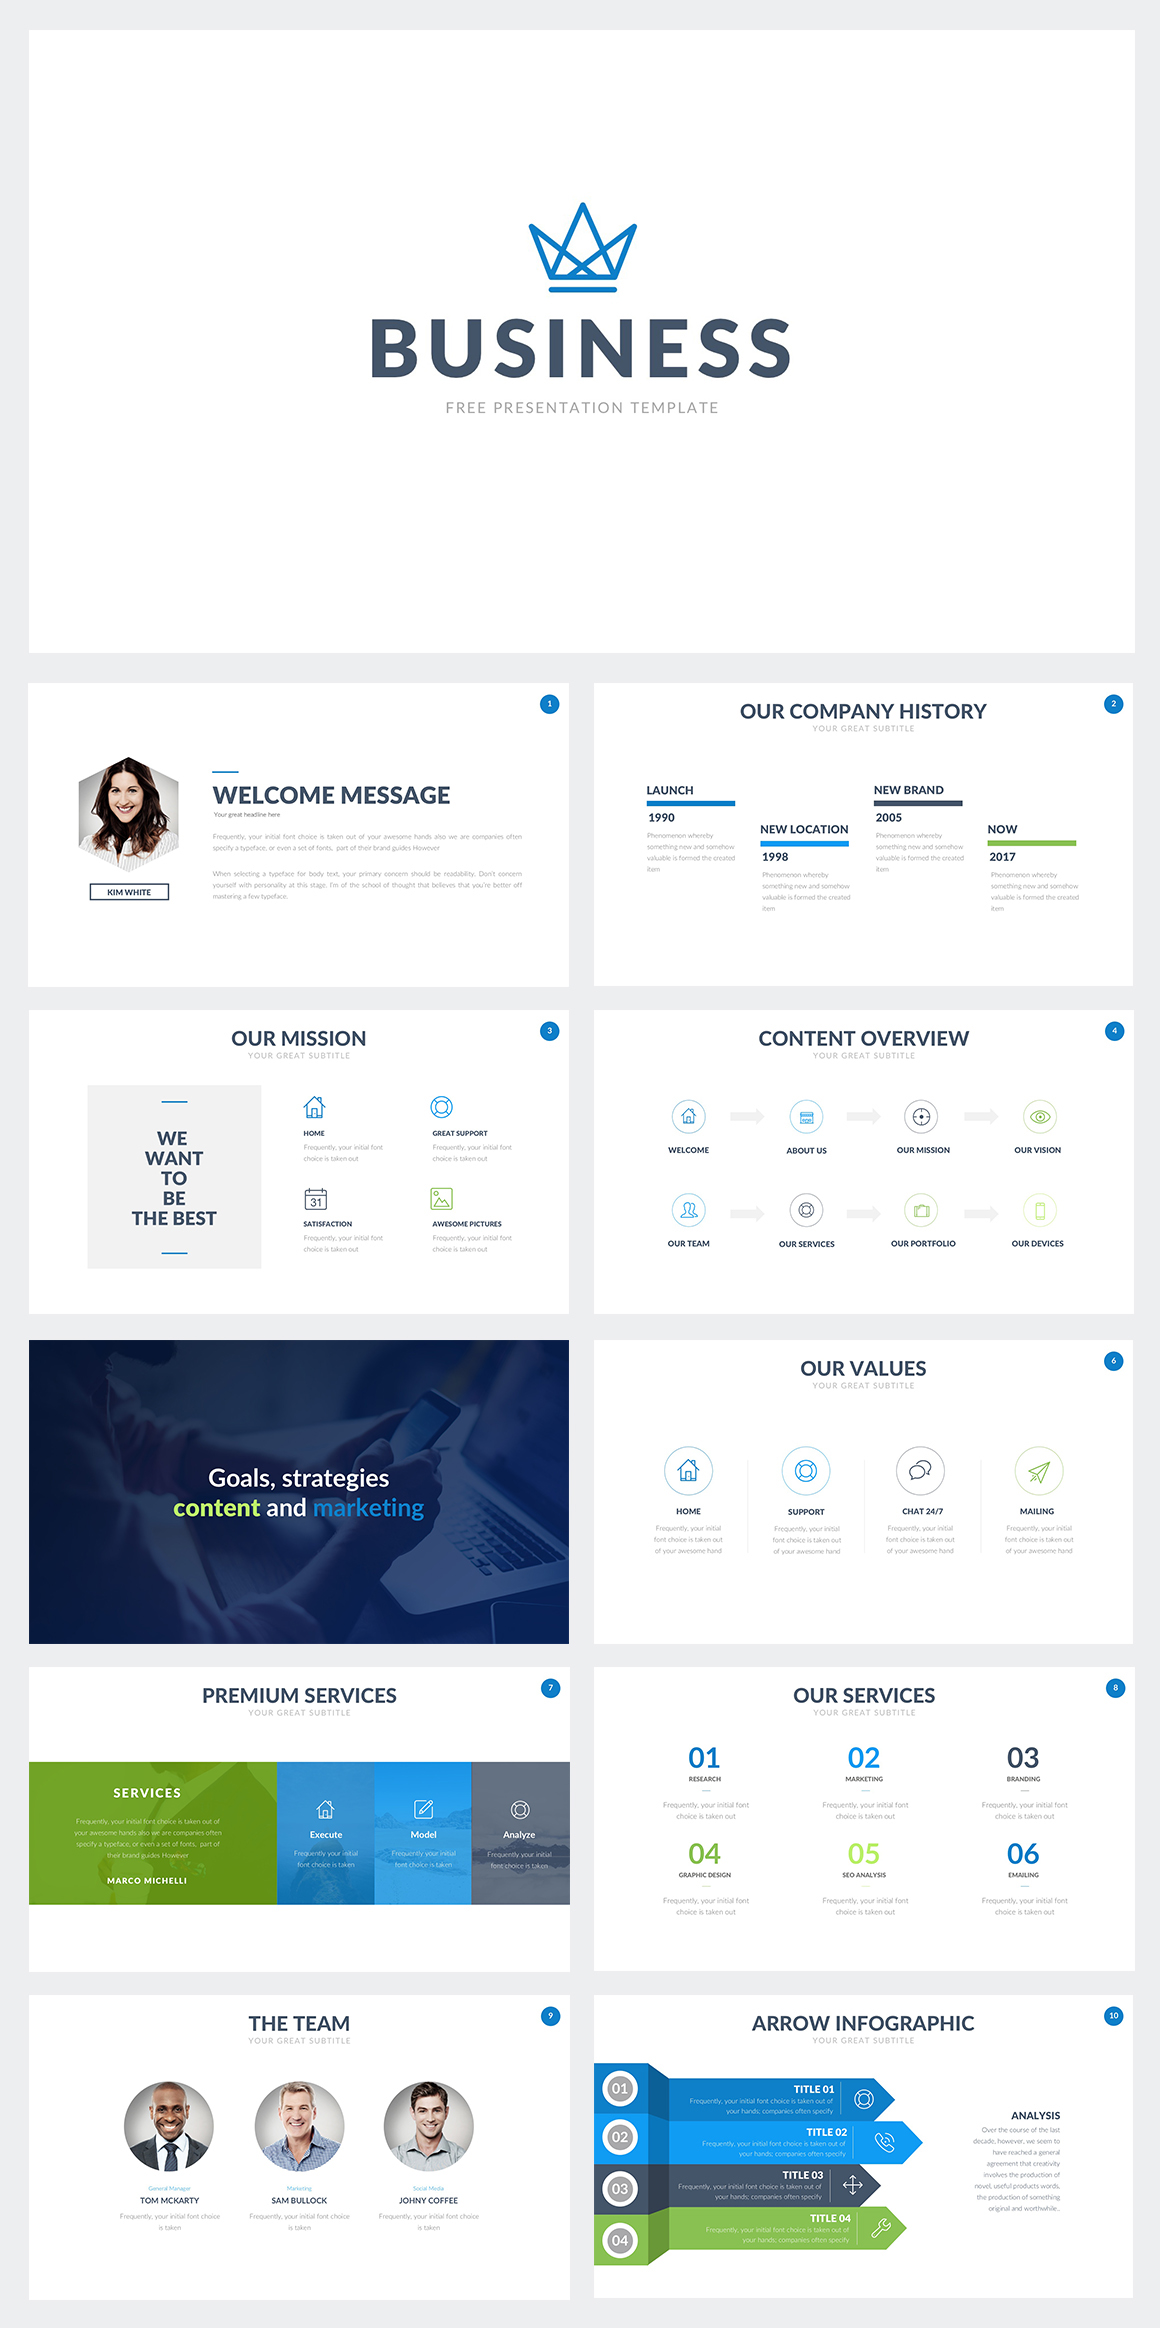 Free business powerpoint template on behance free business powerpoint template here flashek Image collections